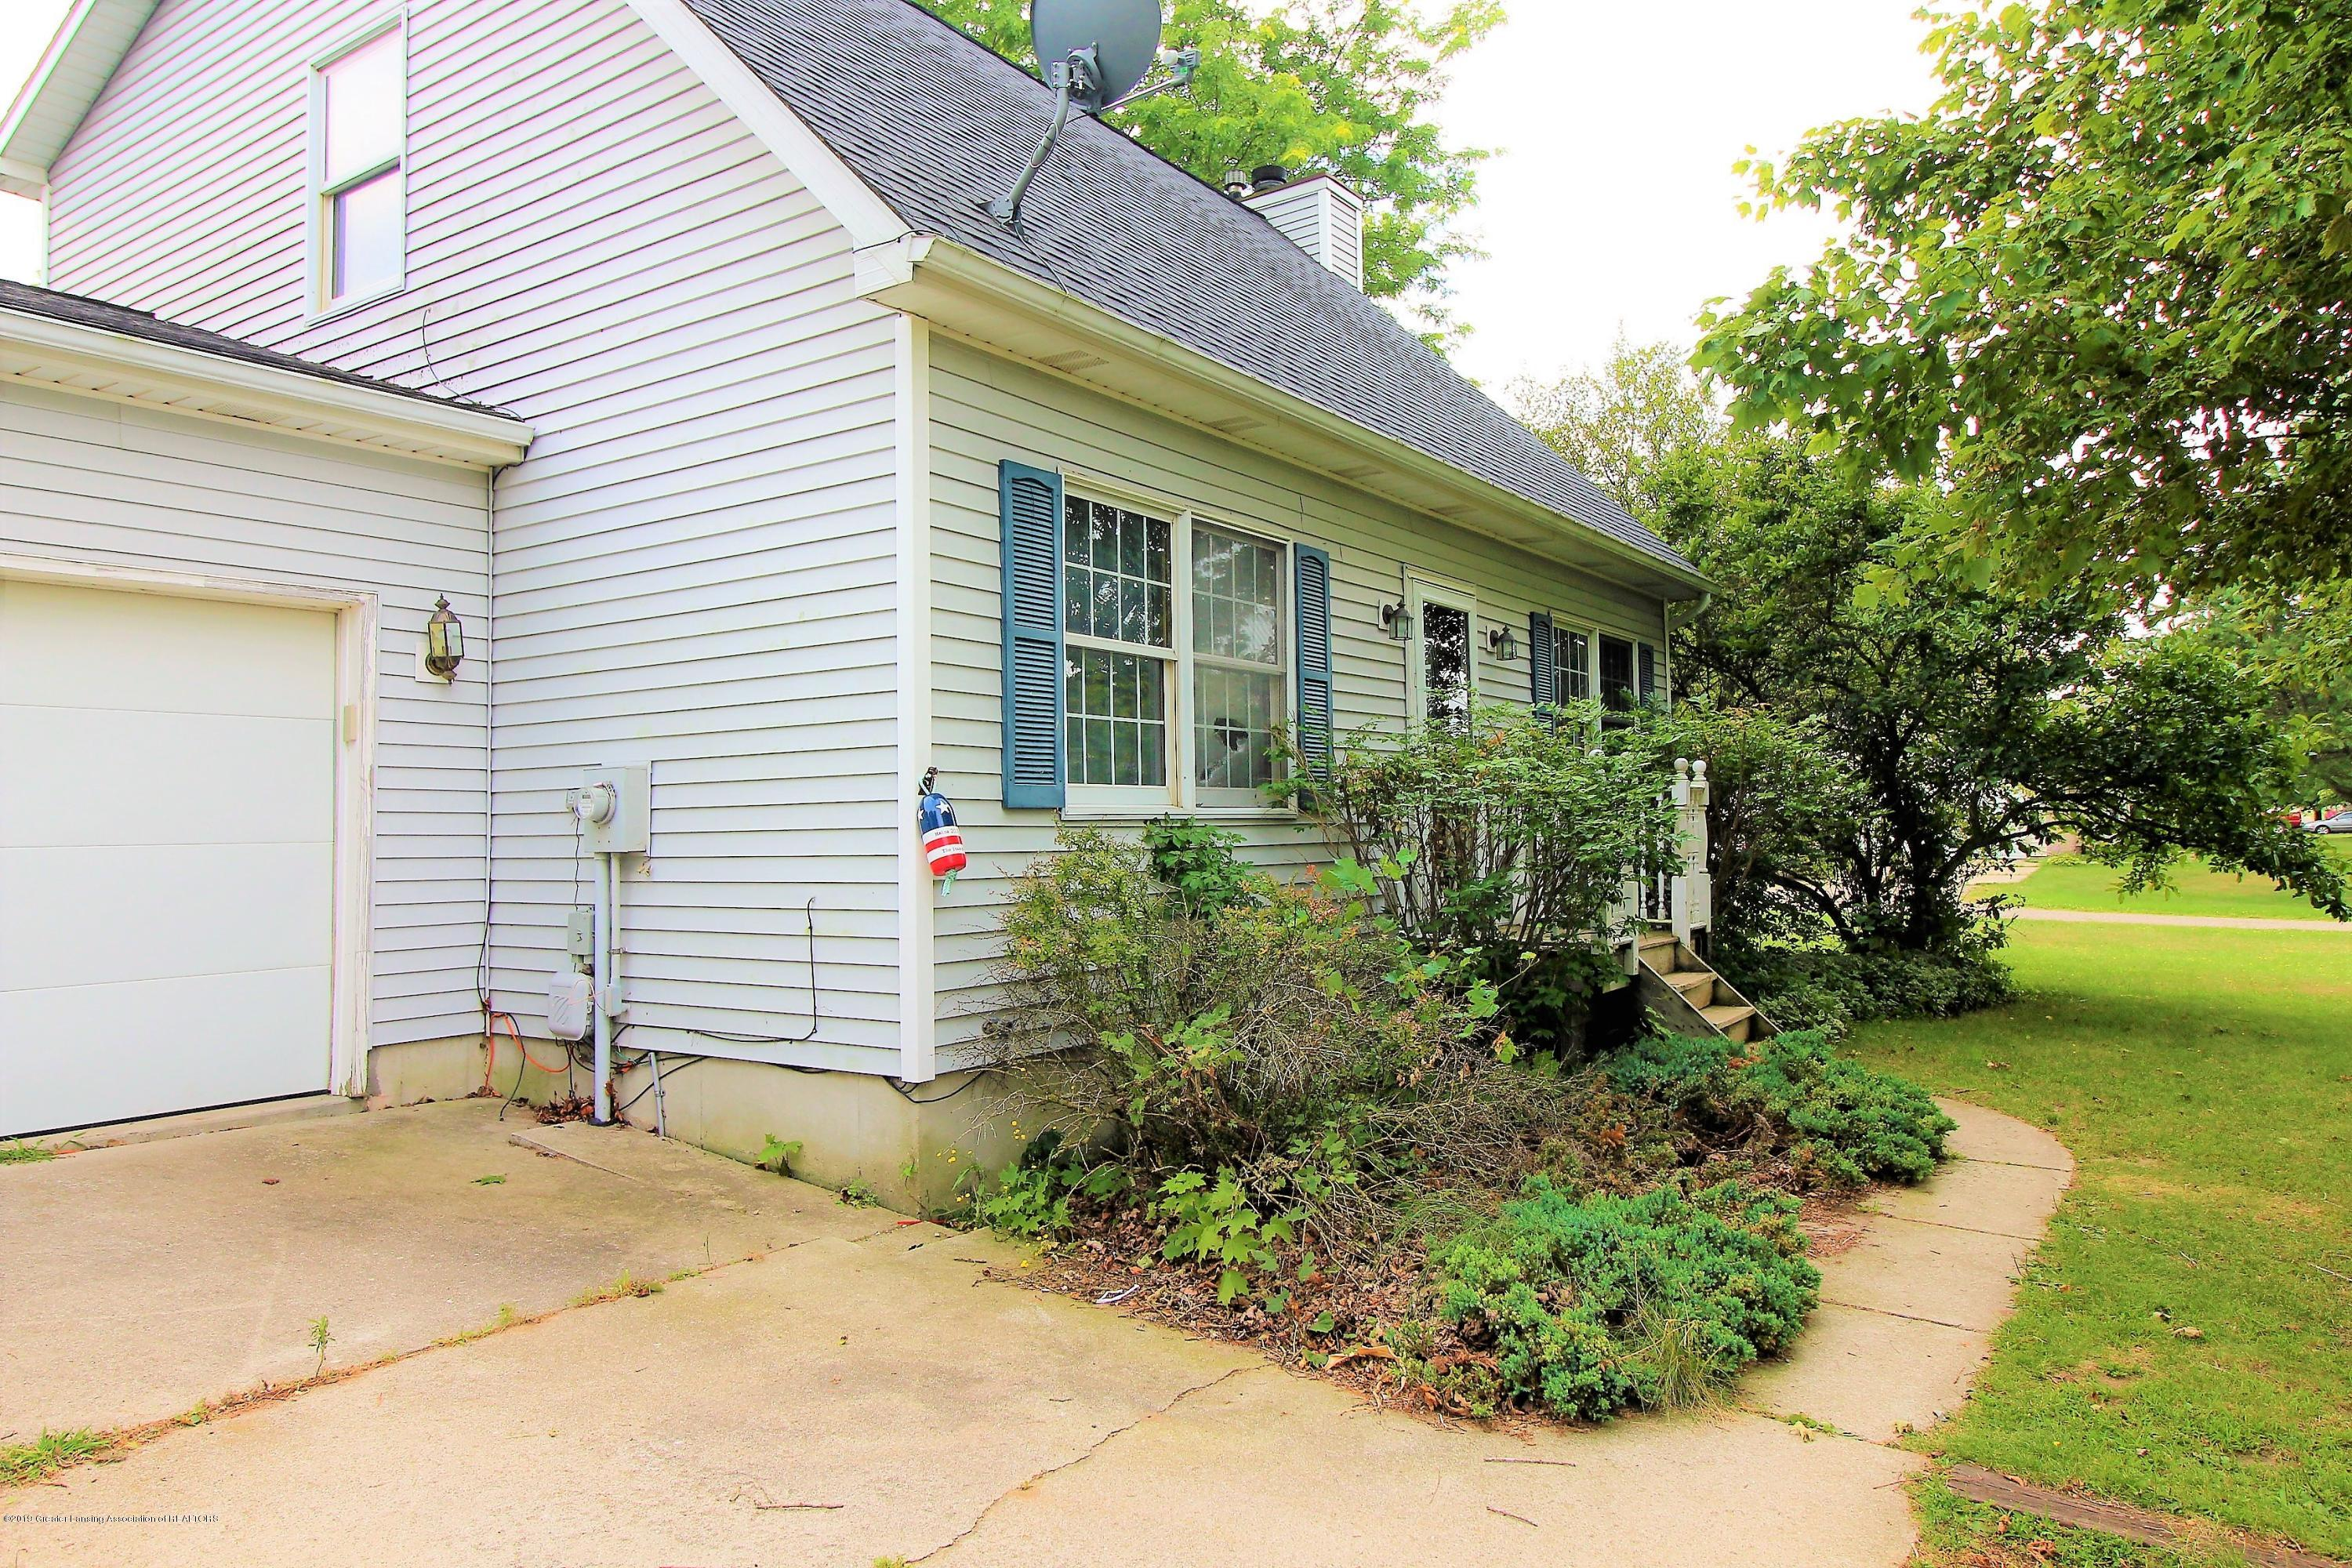 200 N Donegal St - 01 - 2